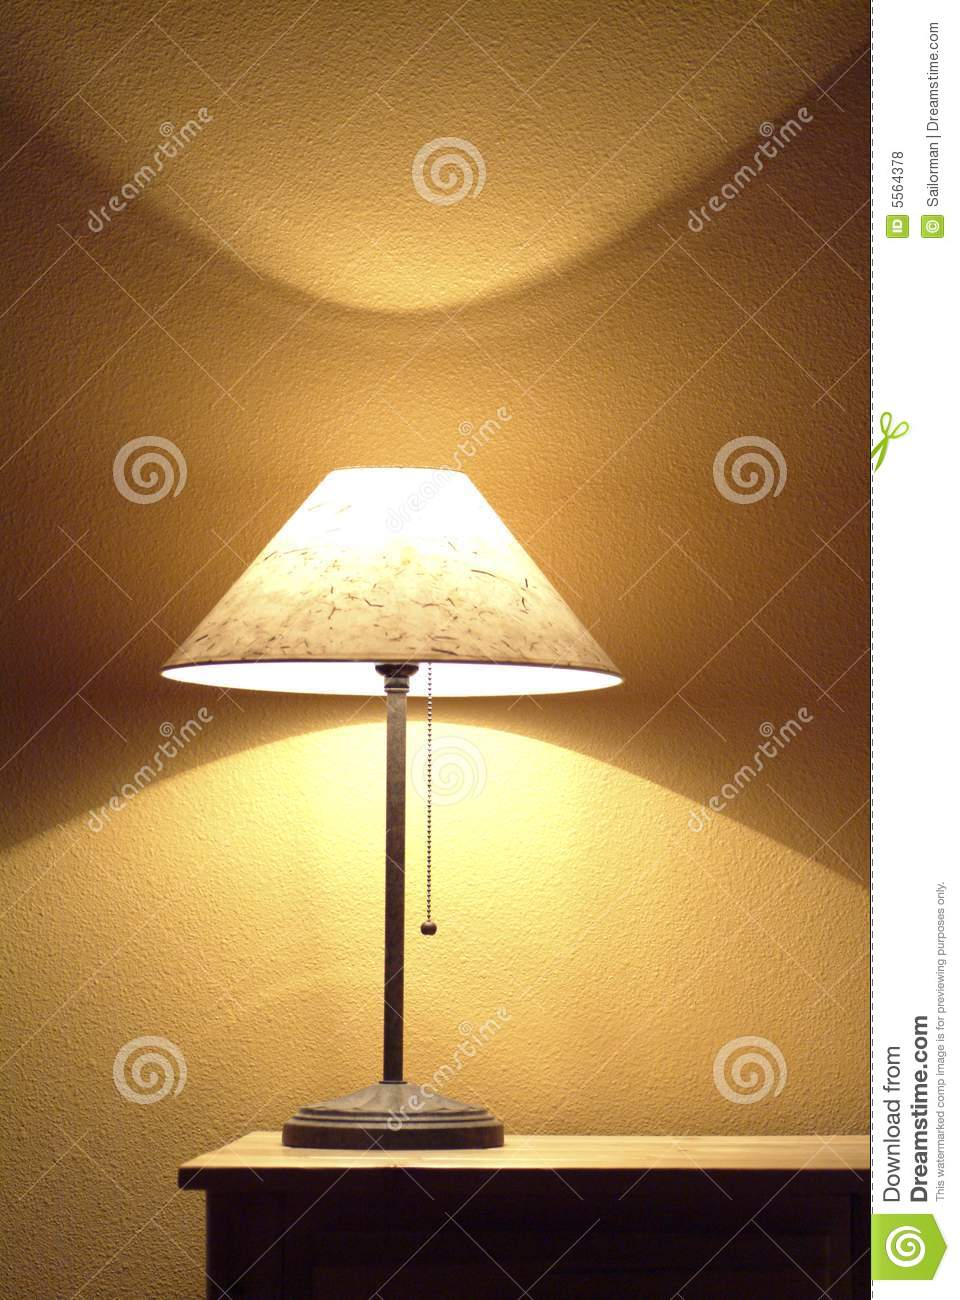 End table lamp stock photo image of yellow reading shade 5564378 end table lamp aloadofball Images